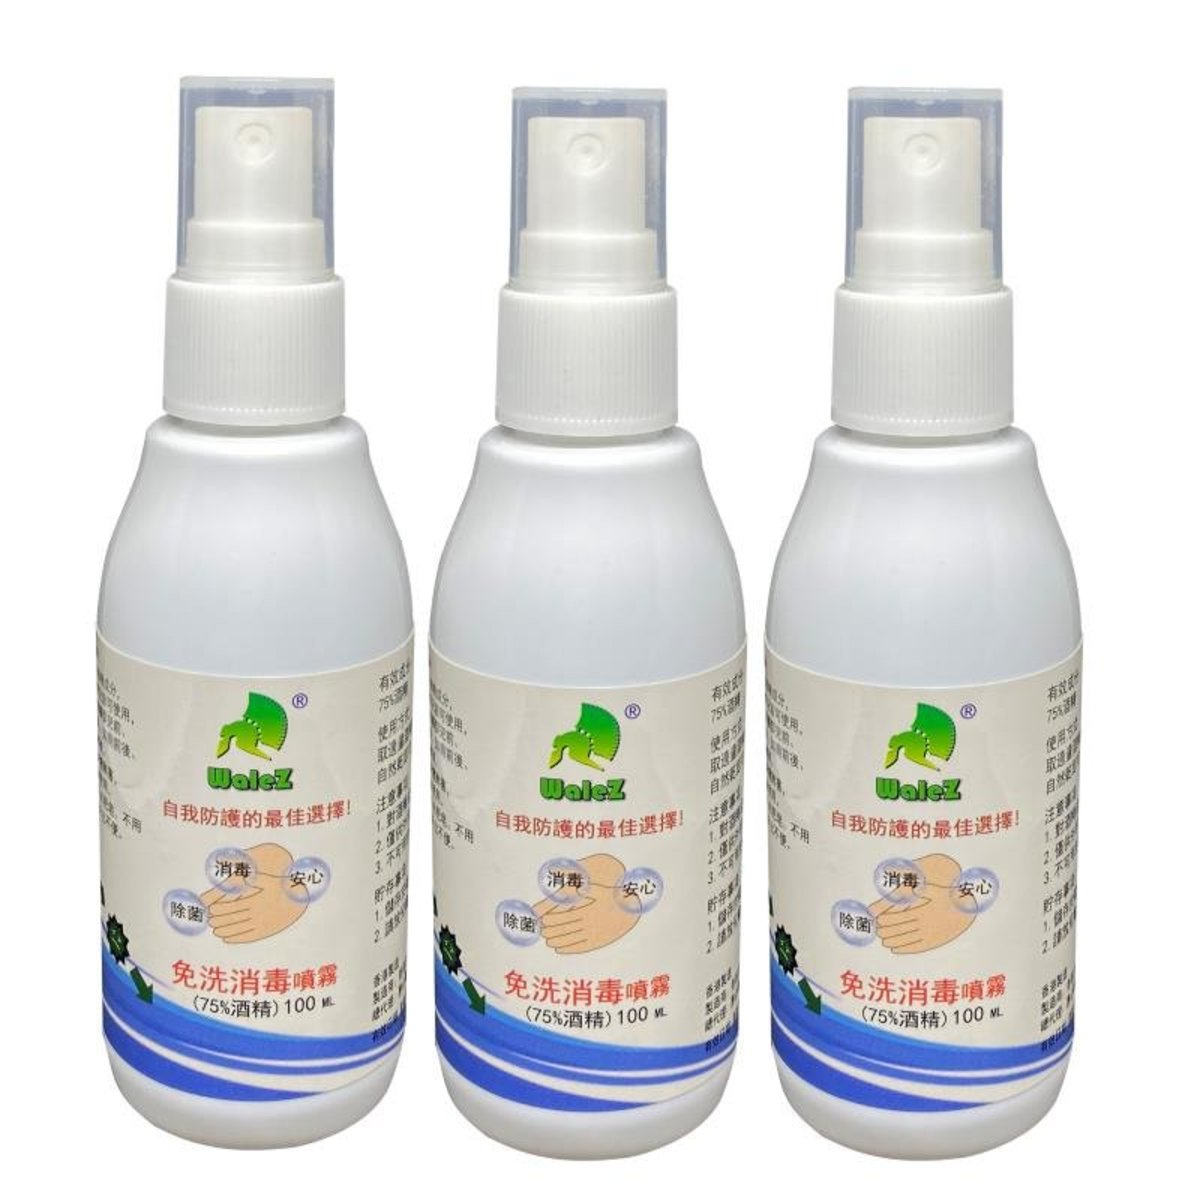 Alcohol sterilization spray 75% alcohol-free disinfection spray 100ML-3 sticks